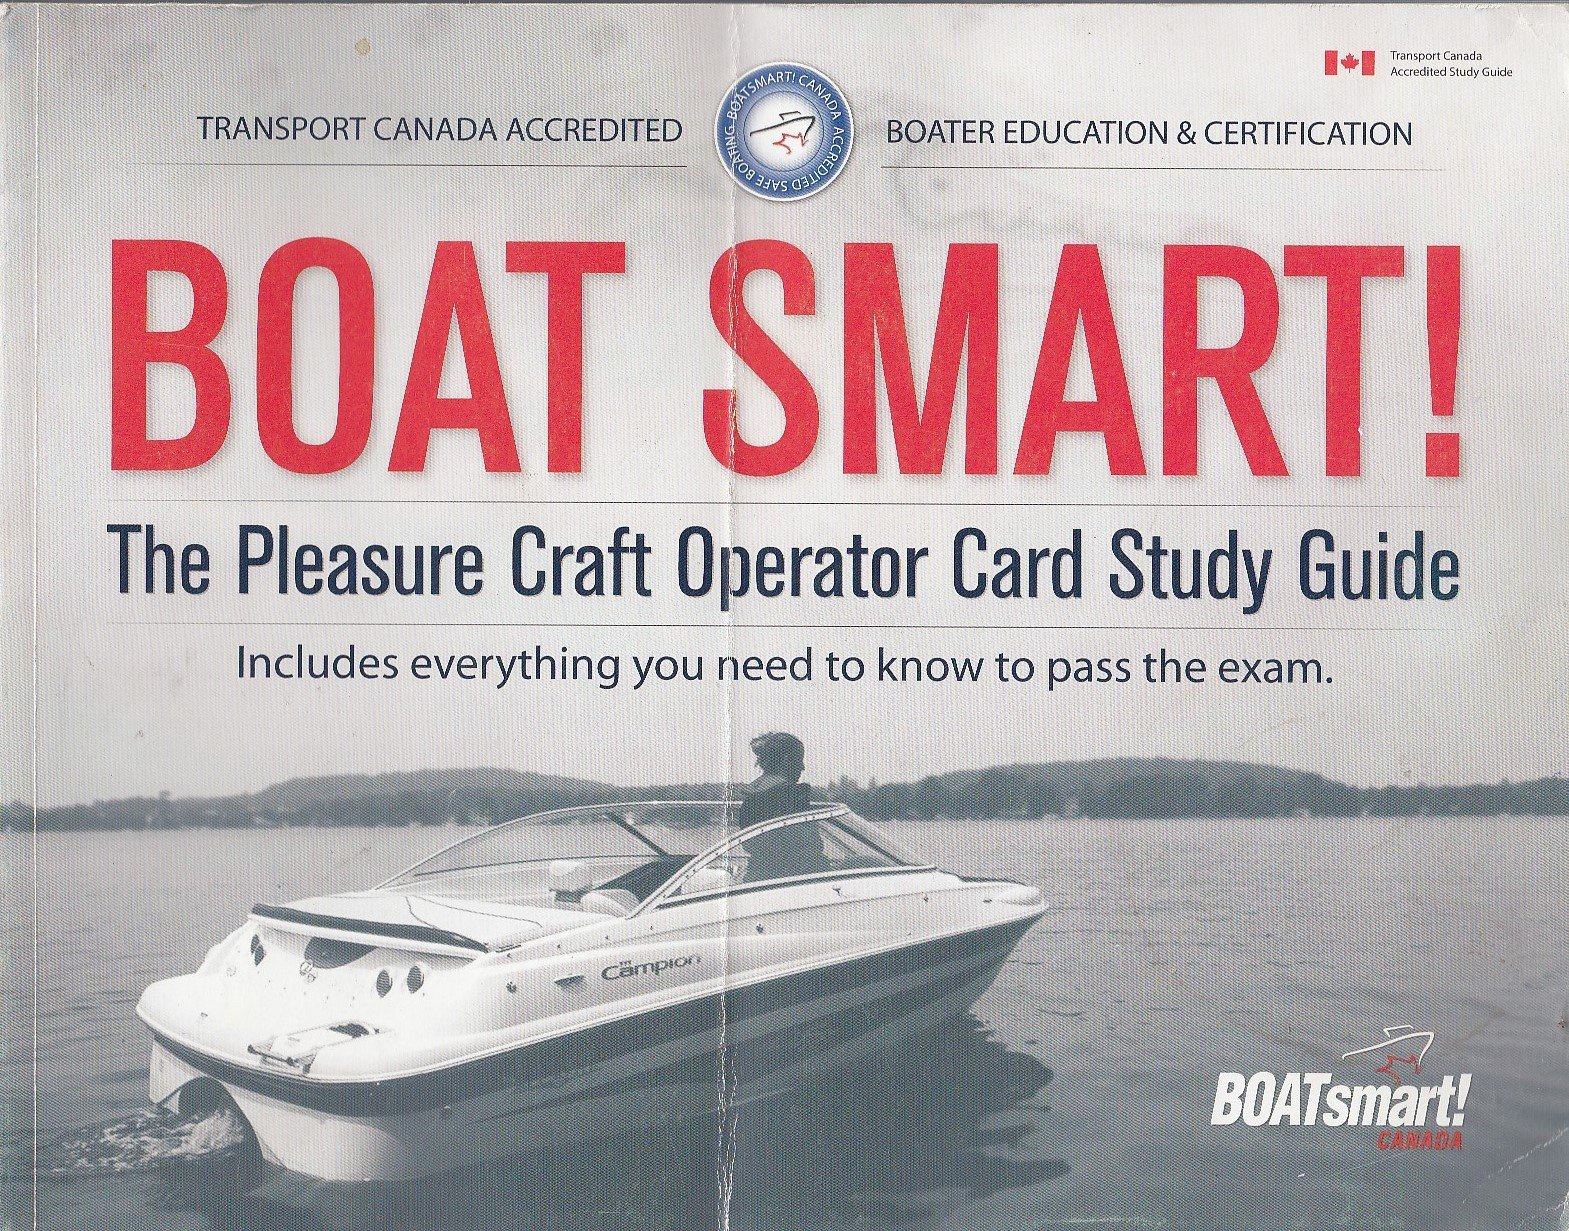 Boat Smart The Pleasure Craft Operator Card Study Guide Paperback – 2005